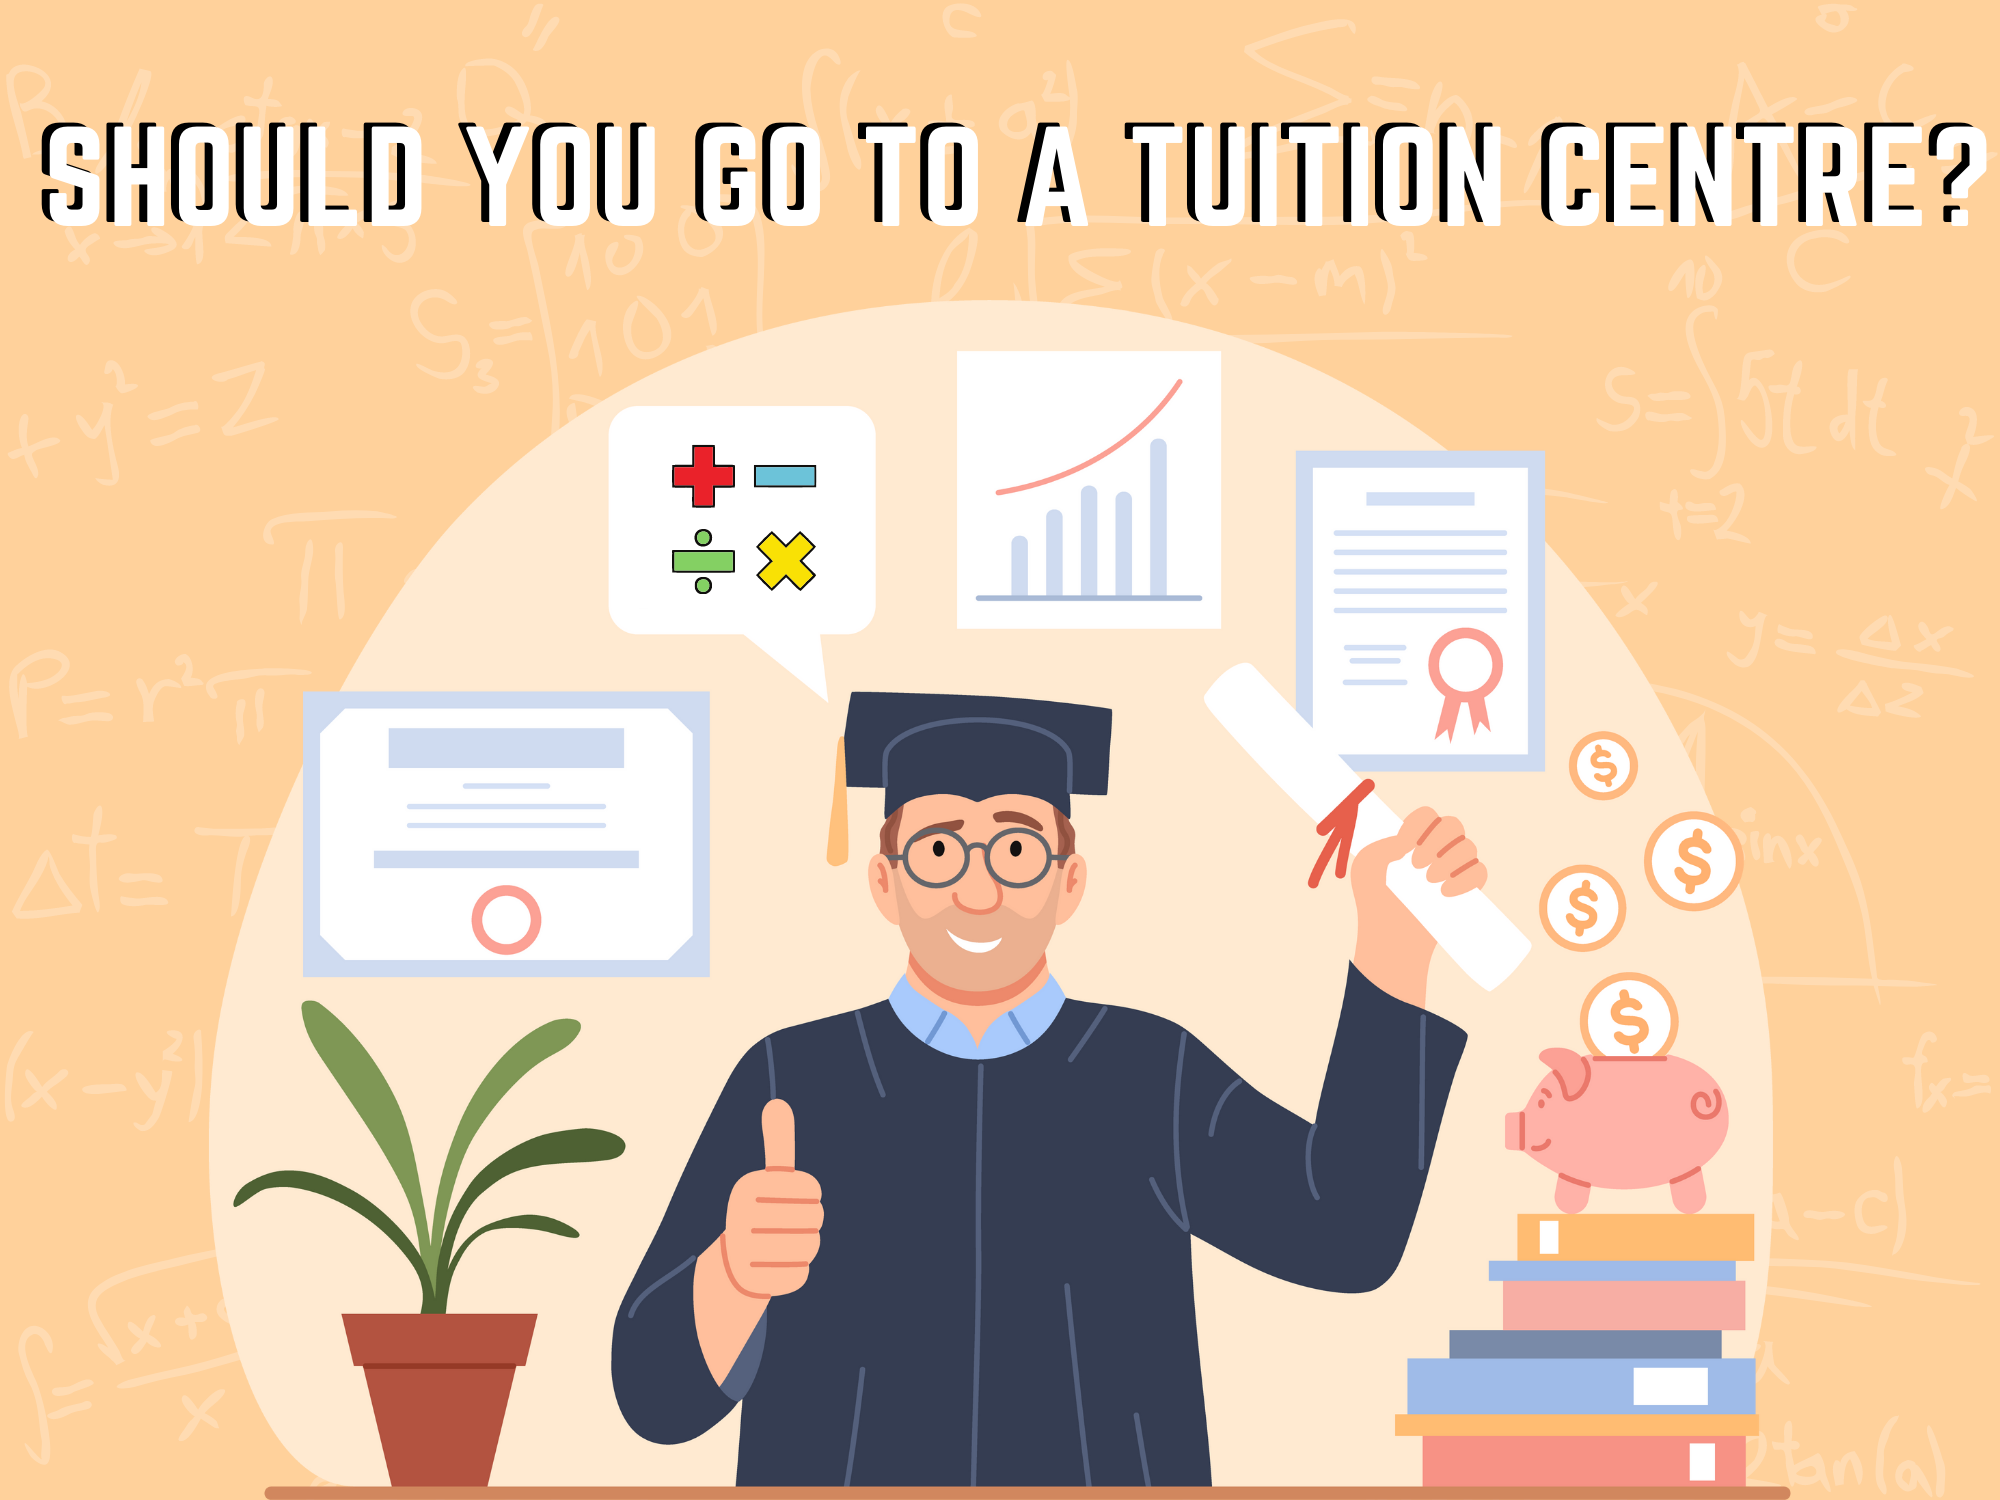 Should-you-go-to-a-tuition-centre